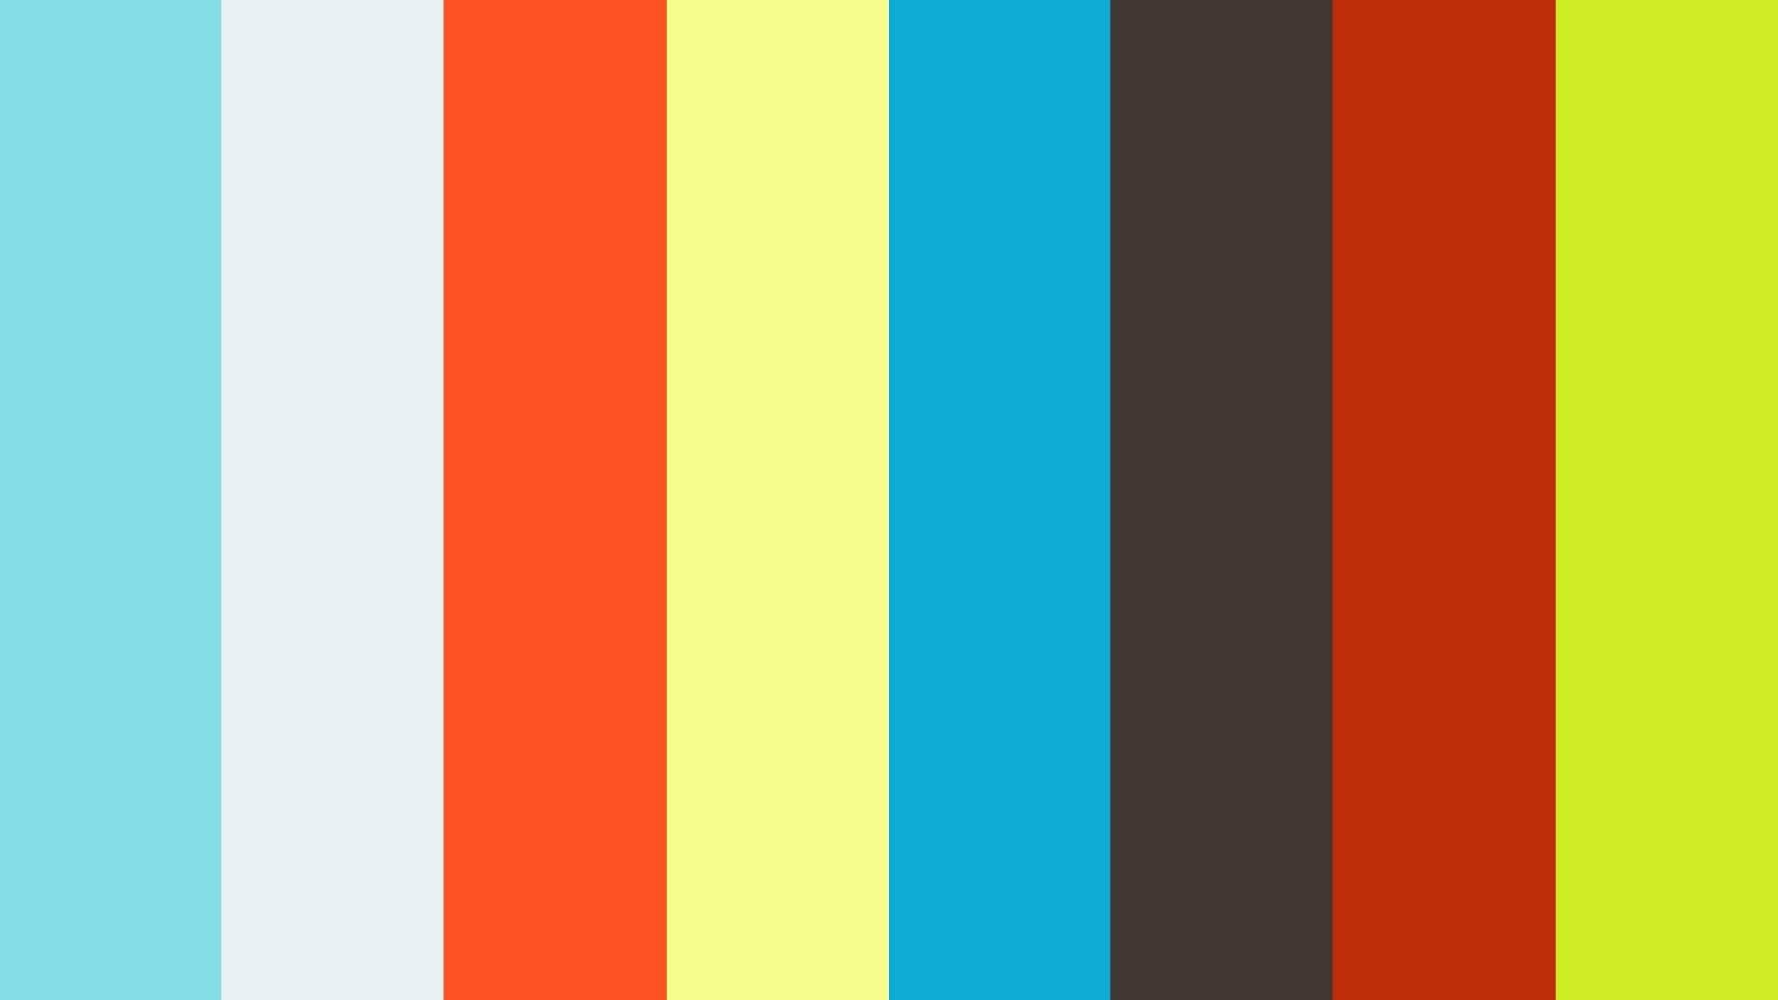 Corning Museum of Glass | Magic and Memories